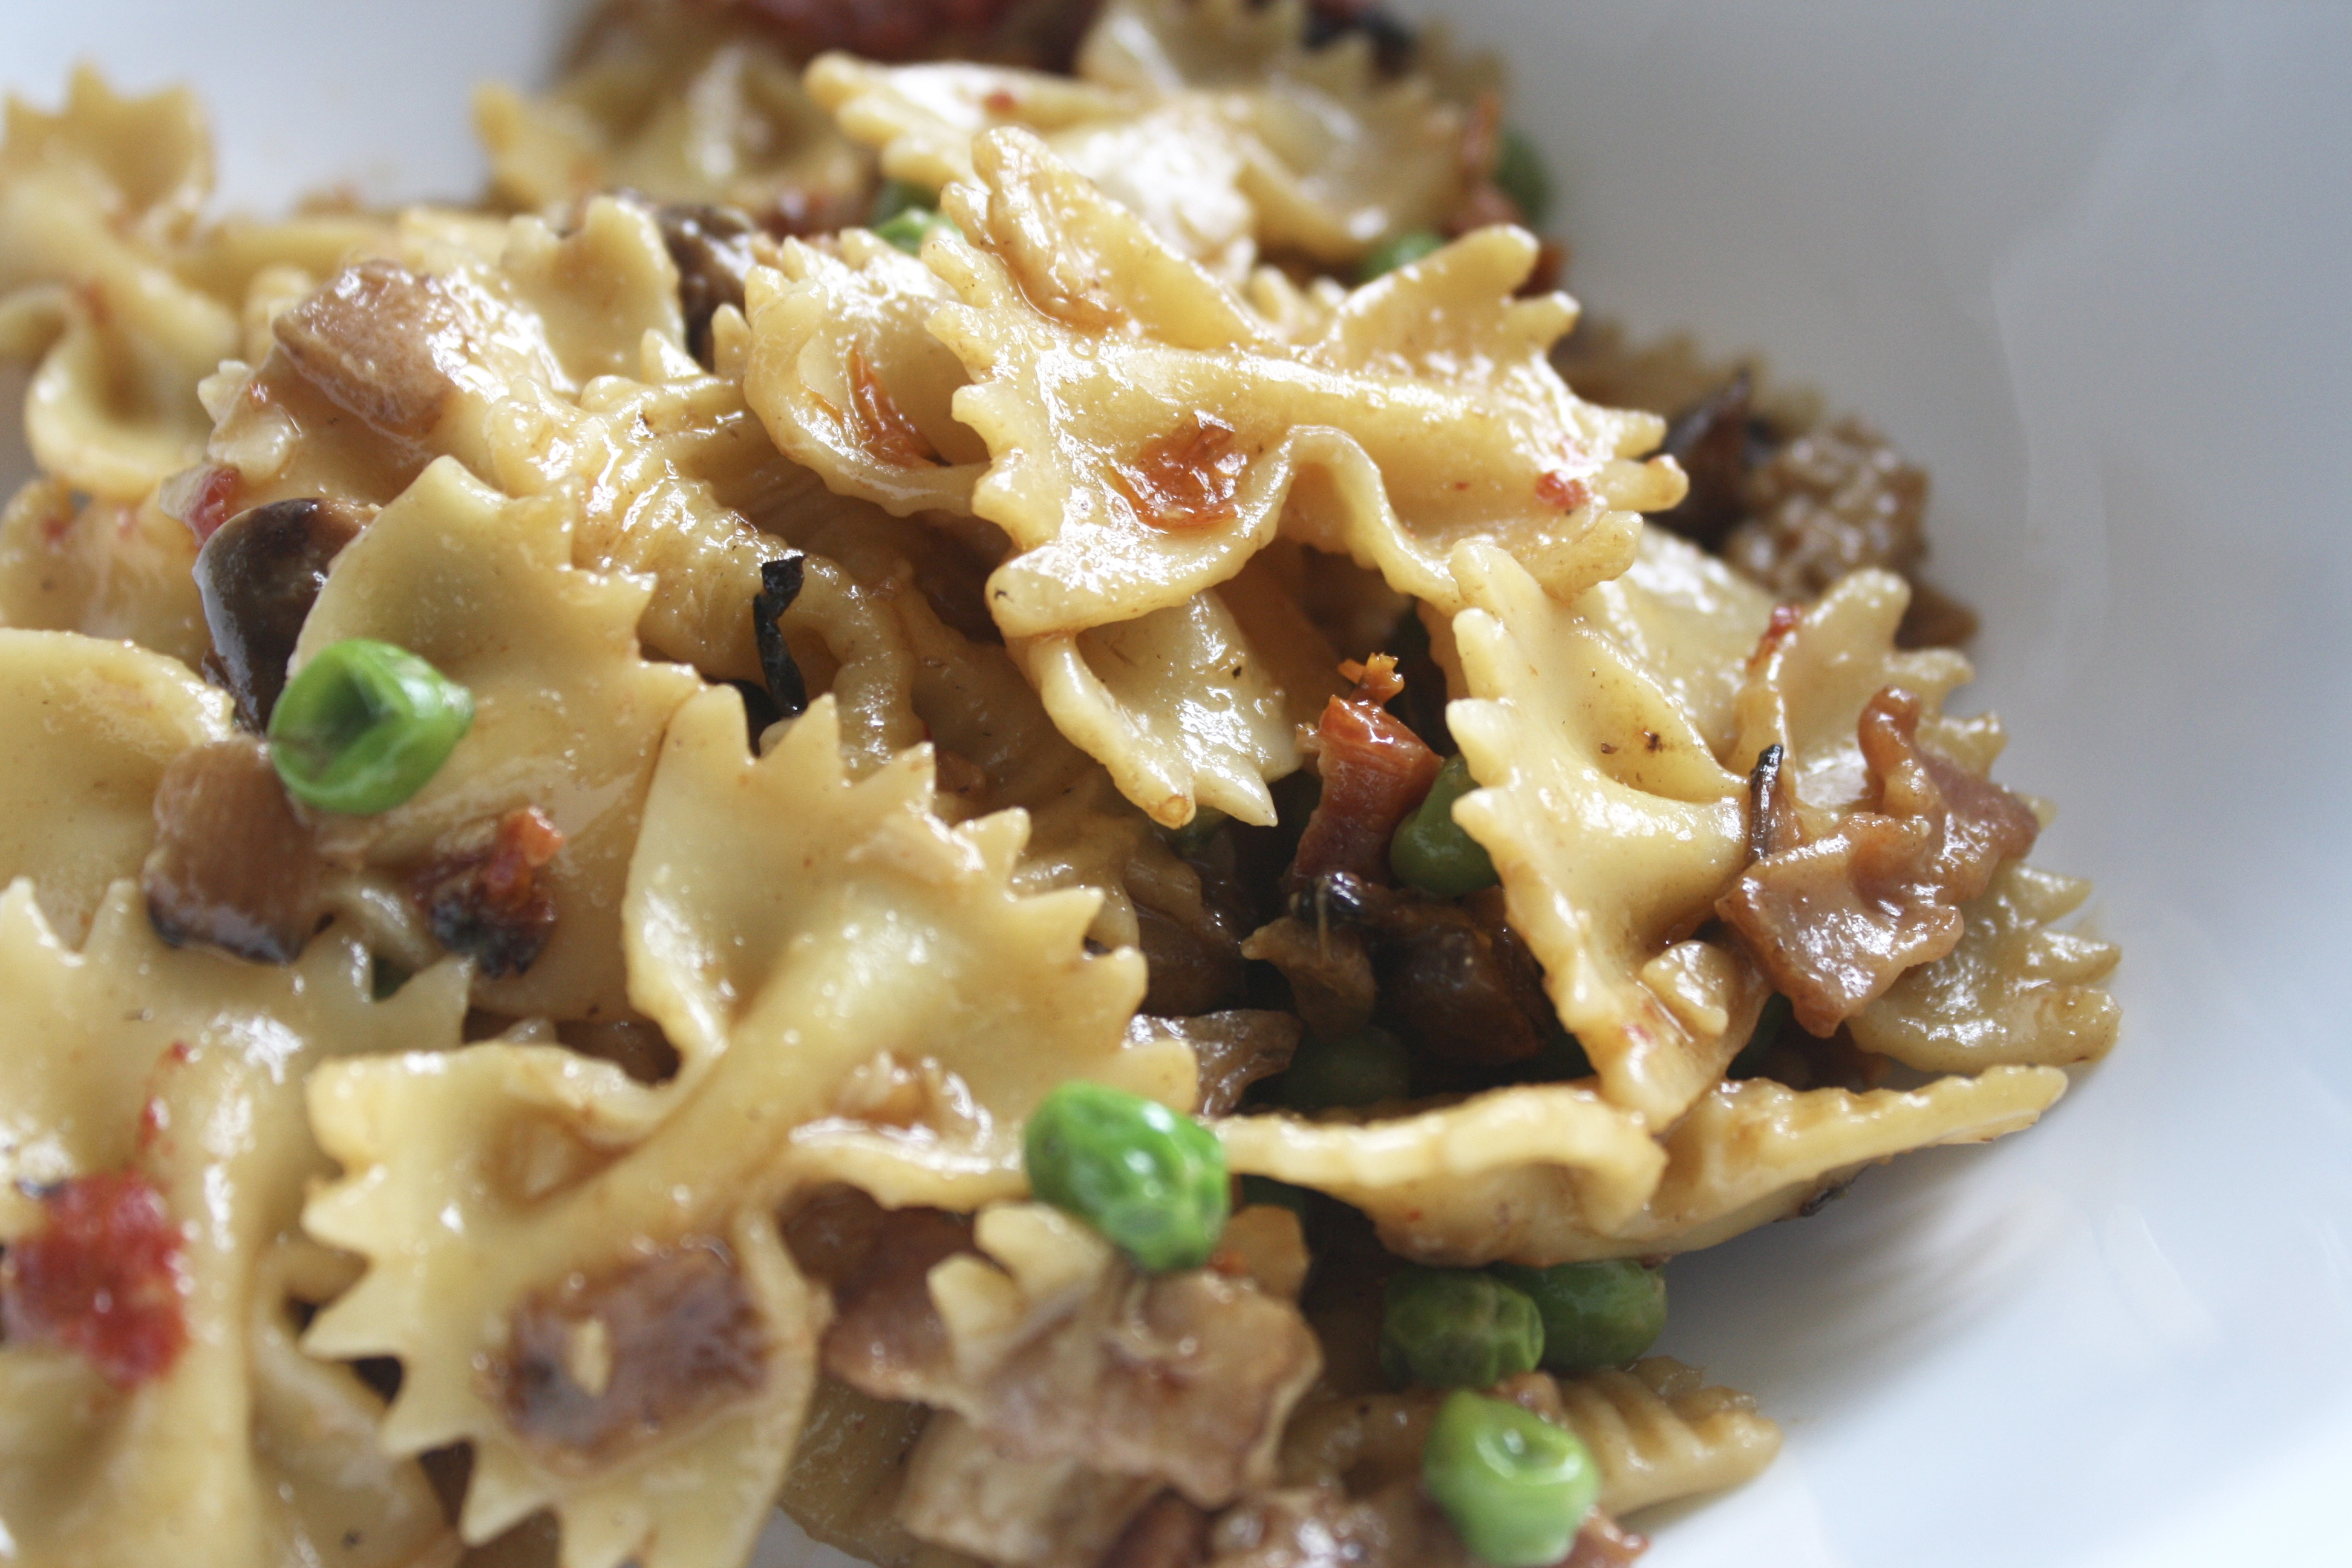 Cheesecake Factory Farfalle With Chicken And Roasted Garlic  the BEST Copycat Cheesecake Factory Farfalle with Chicken